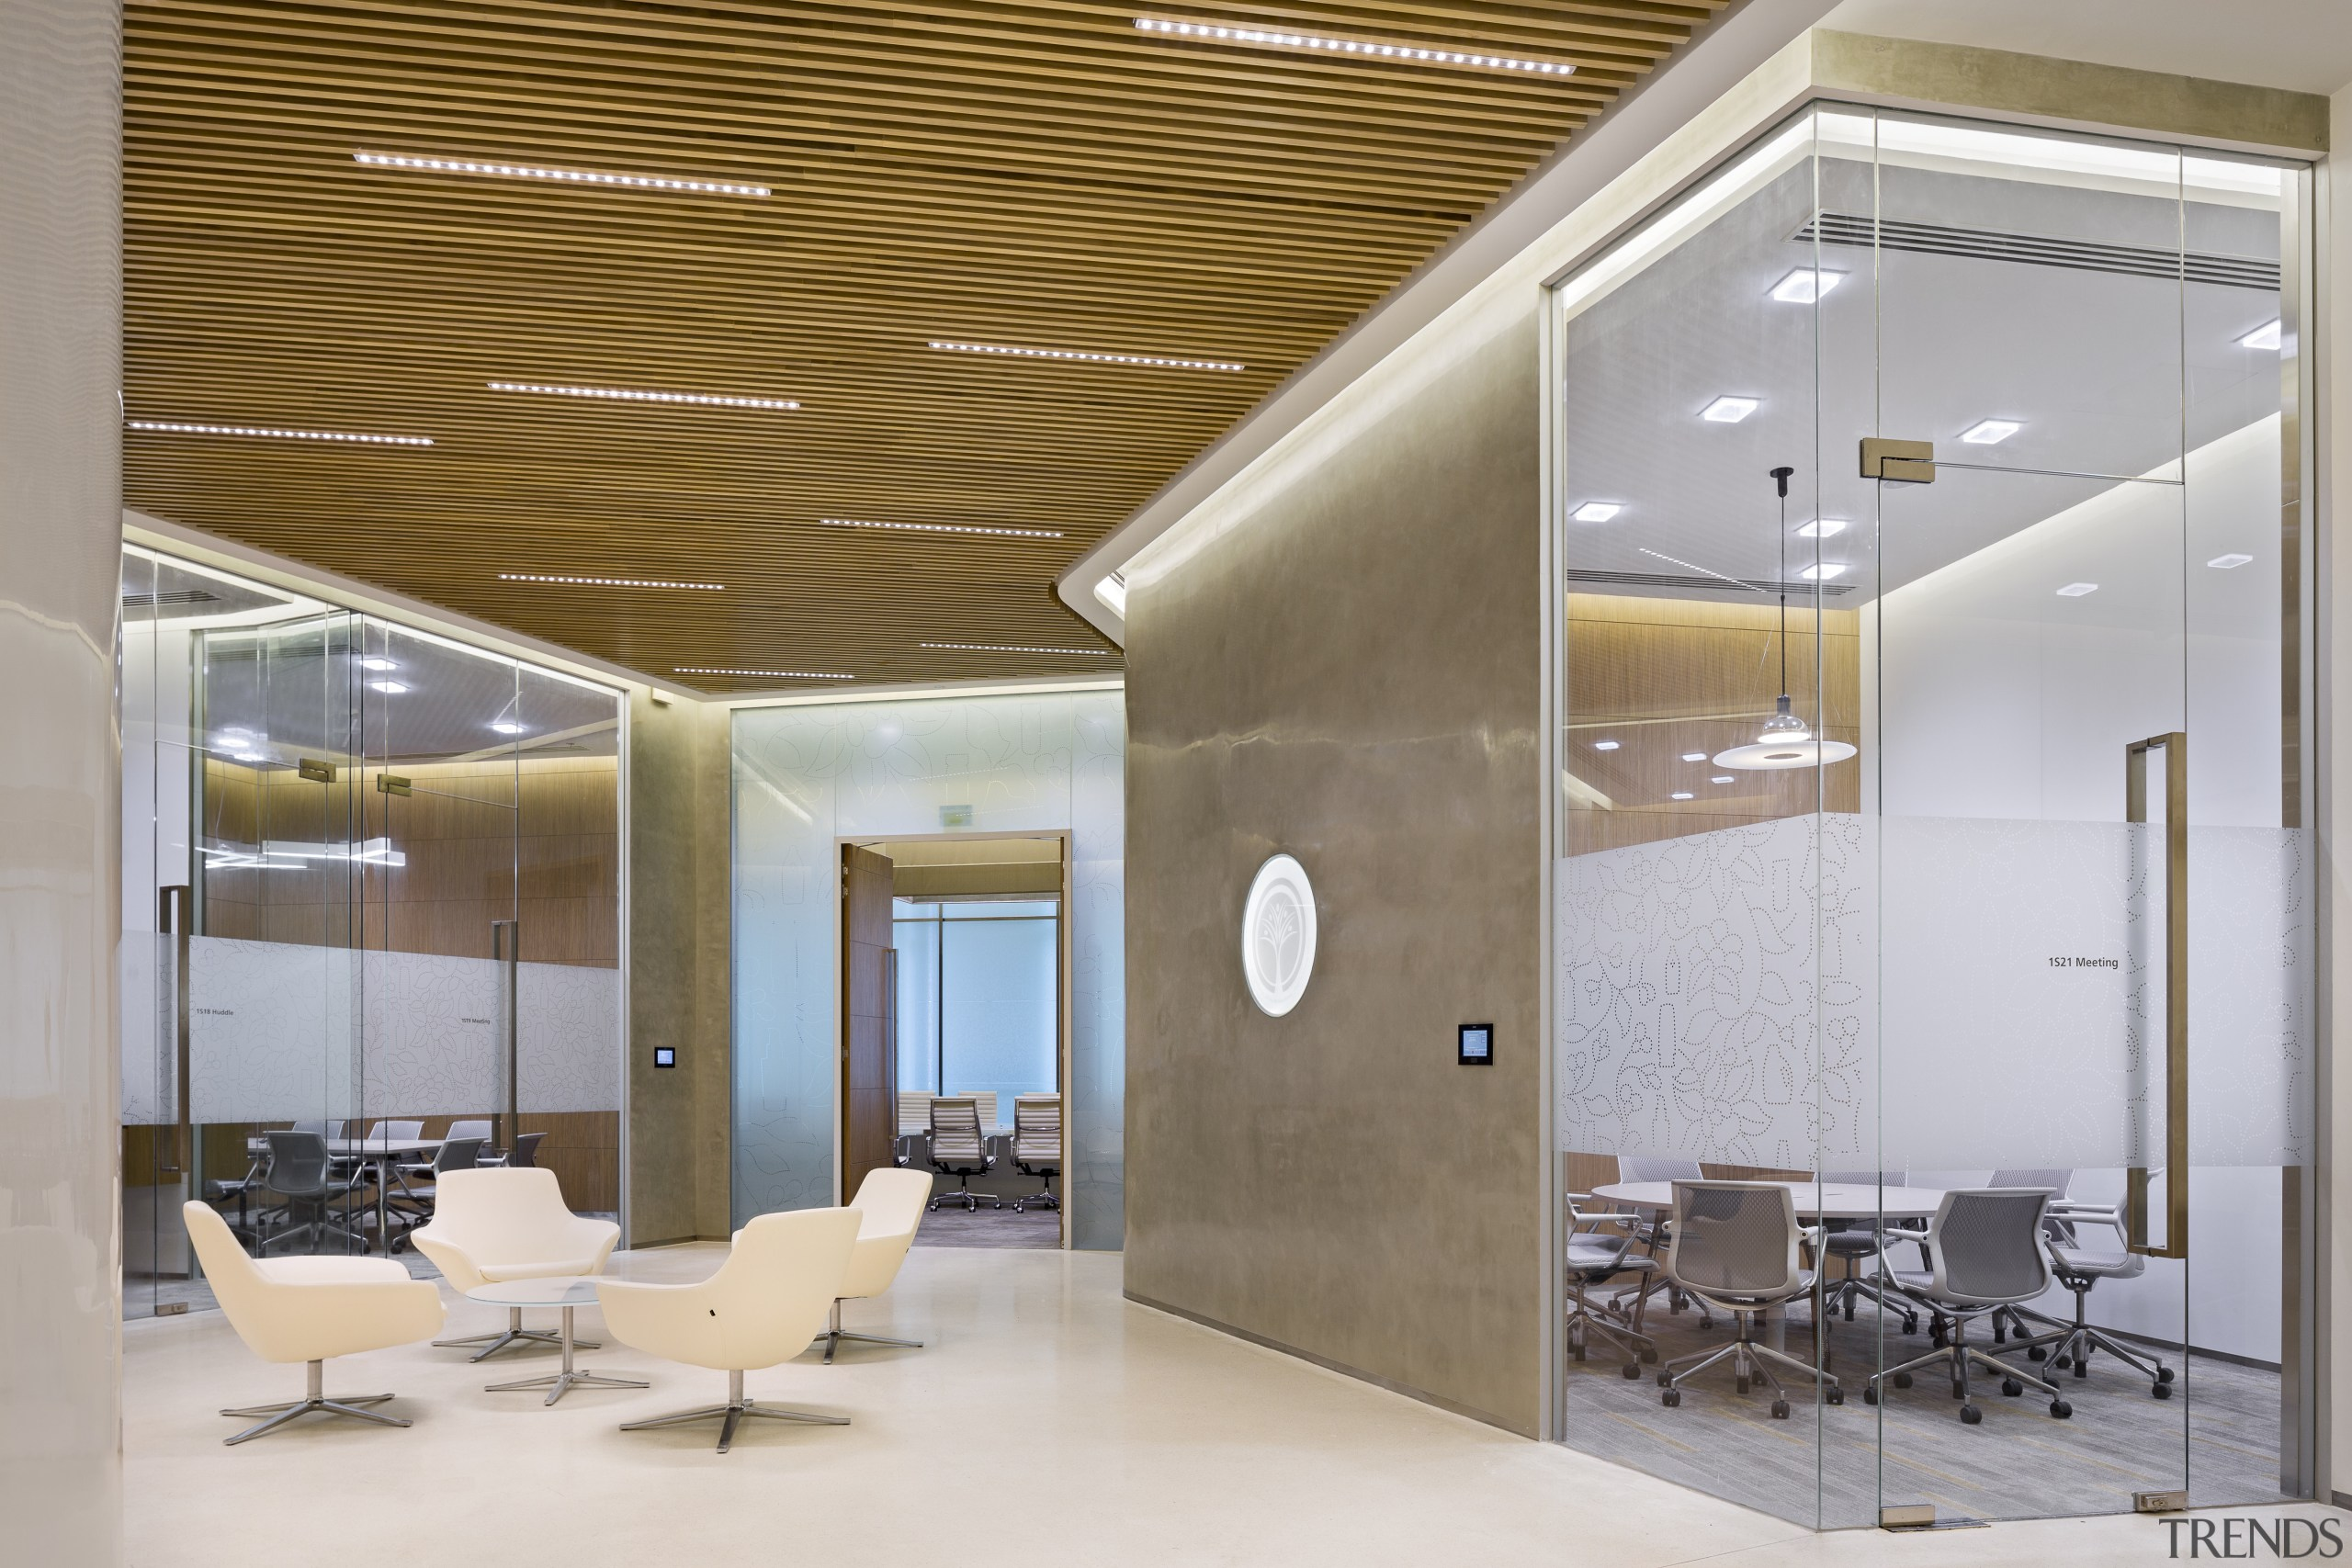 The lower level at the Procter & Gamble architecture, ceiling, daylighting, interior design, lobby, gray, brown